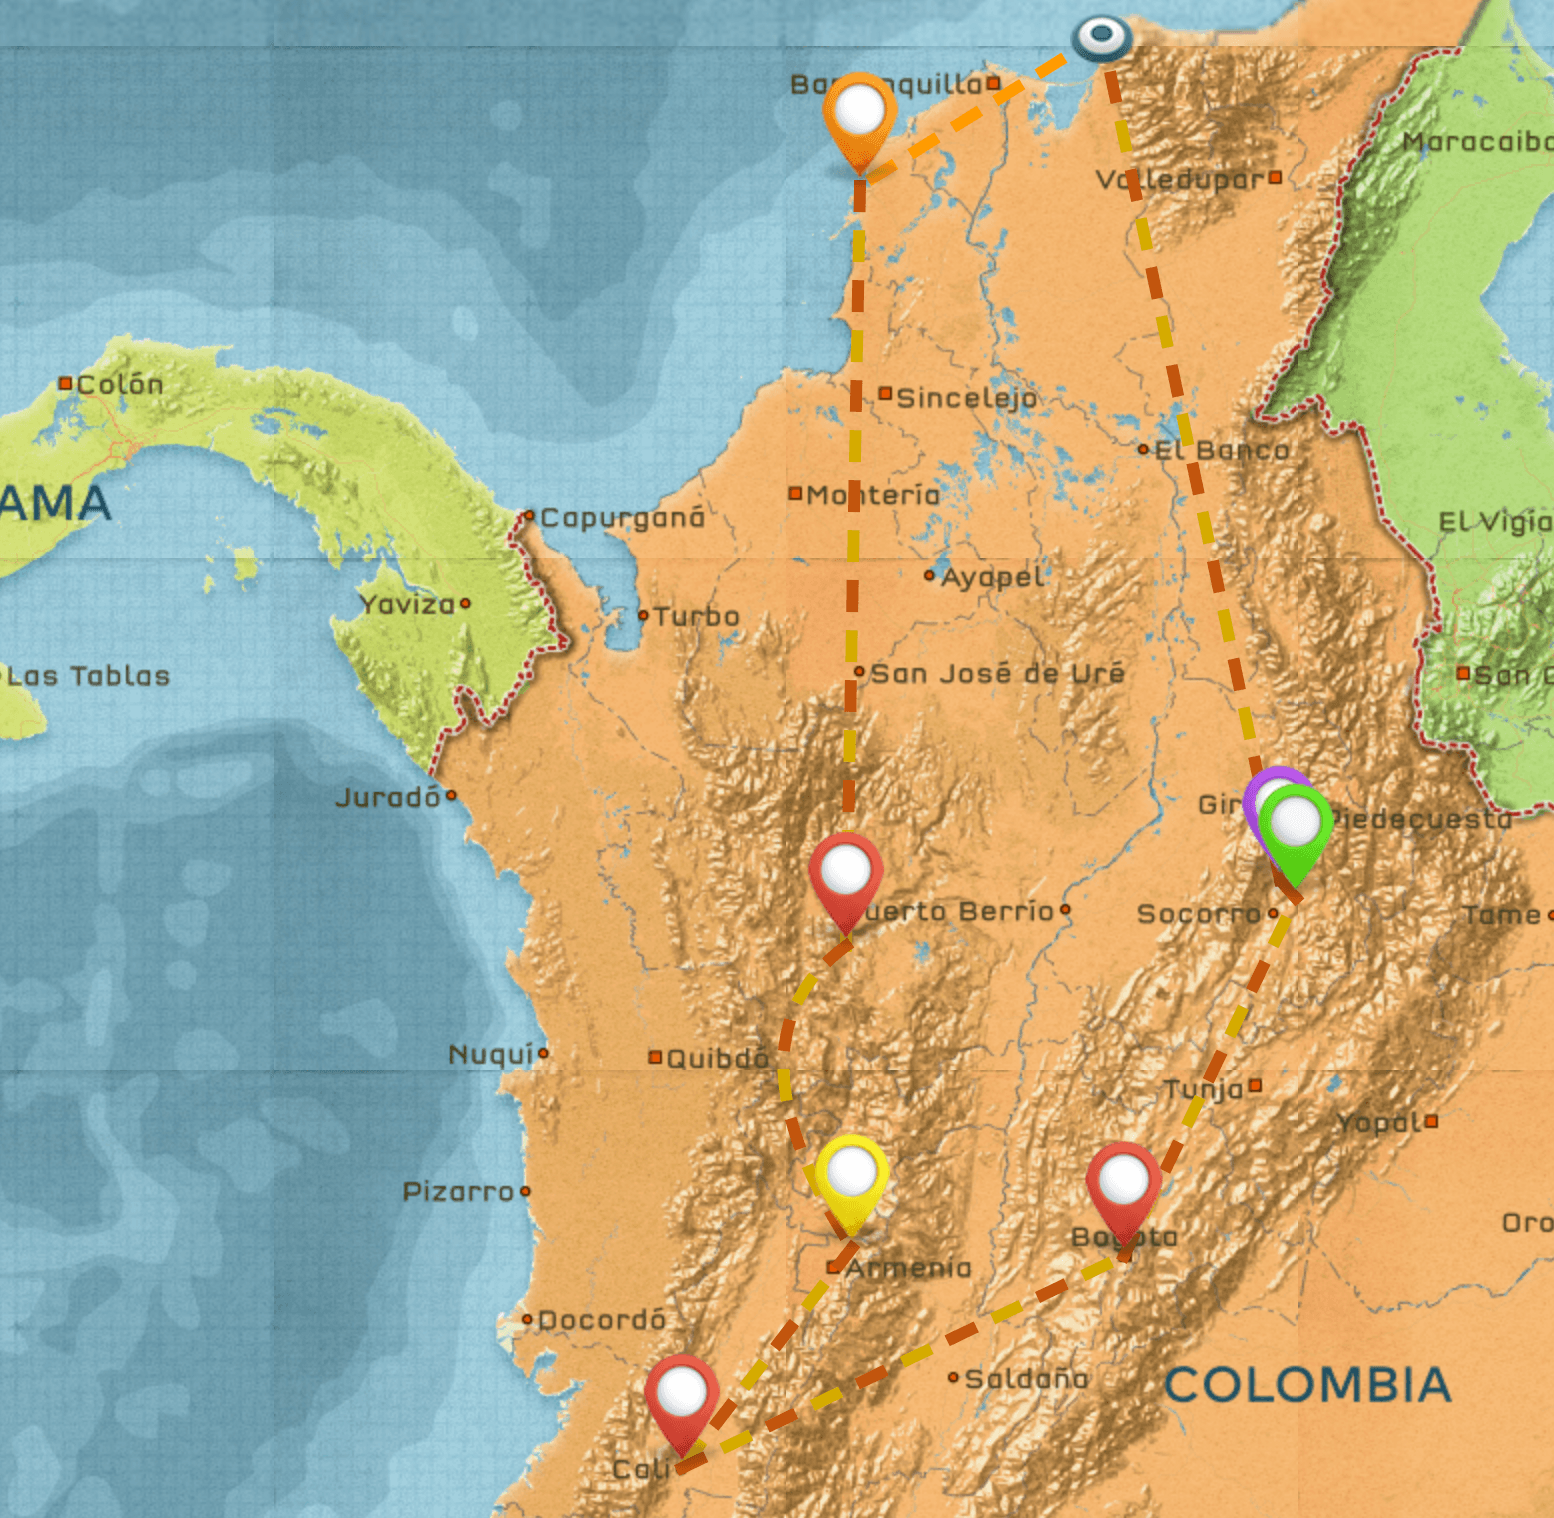 Colombia Itinerary #1